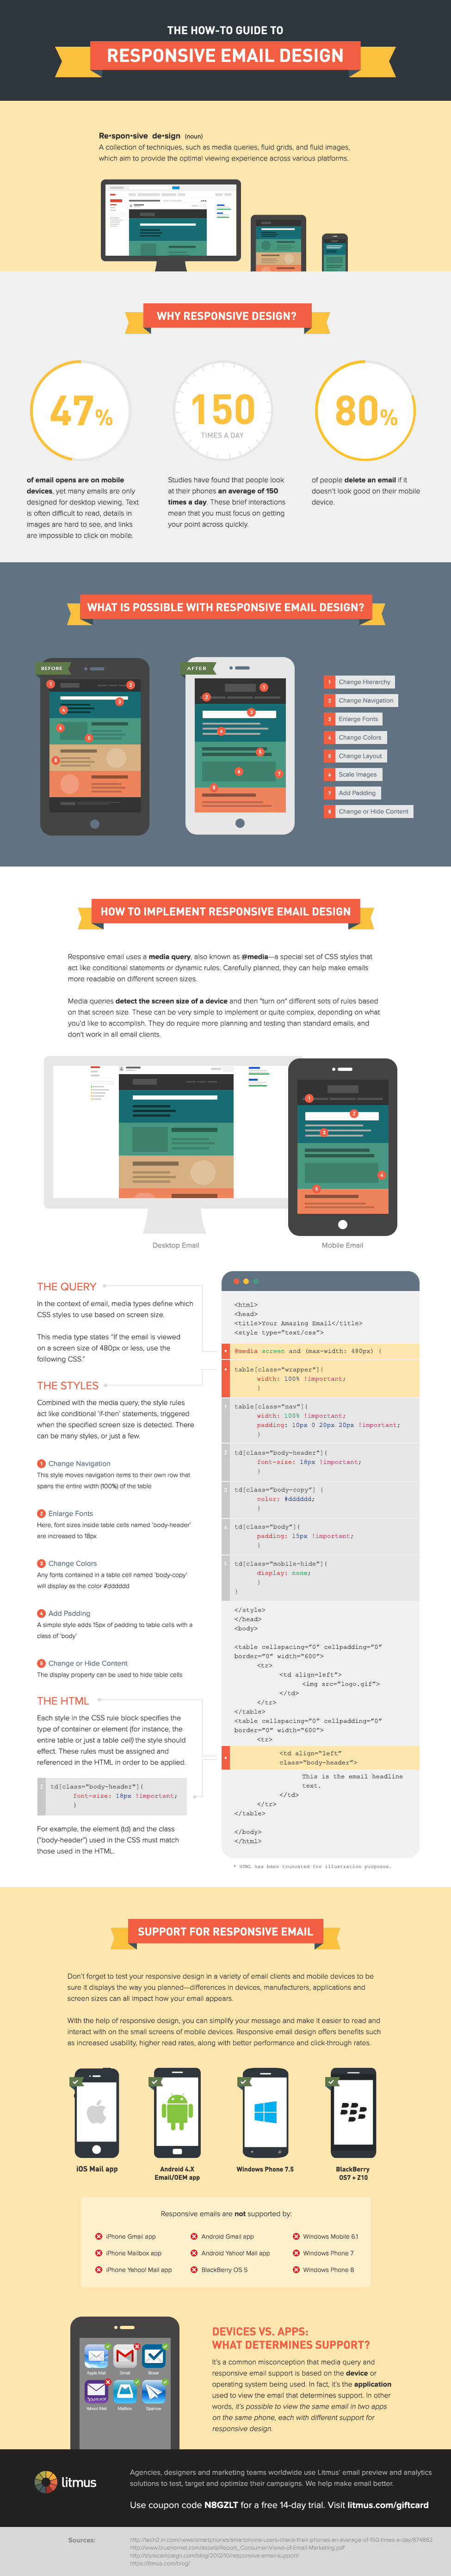 how-to-responsive-email-design-infographic